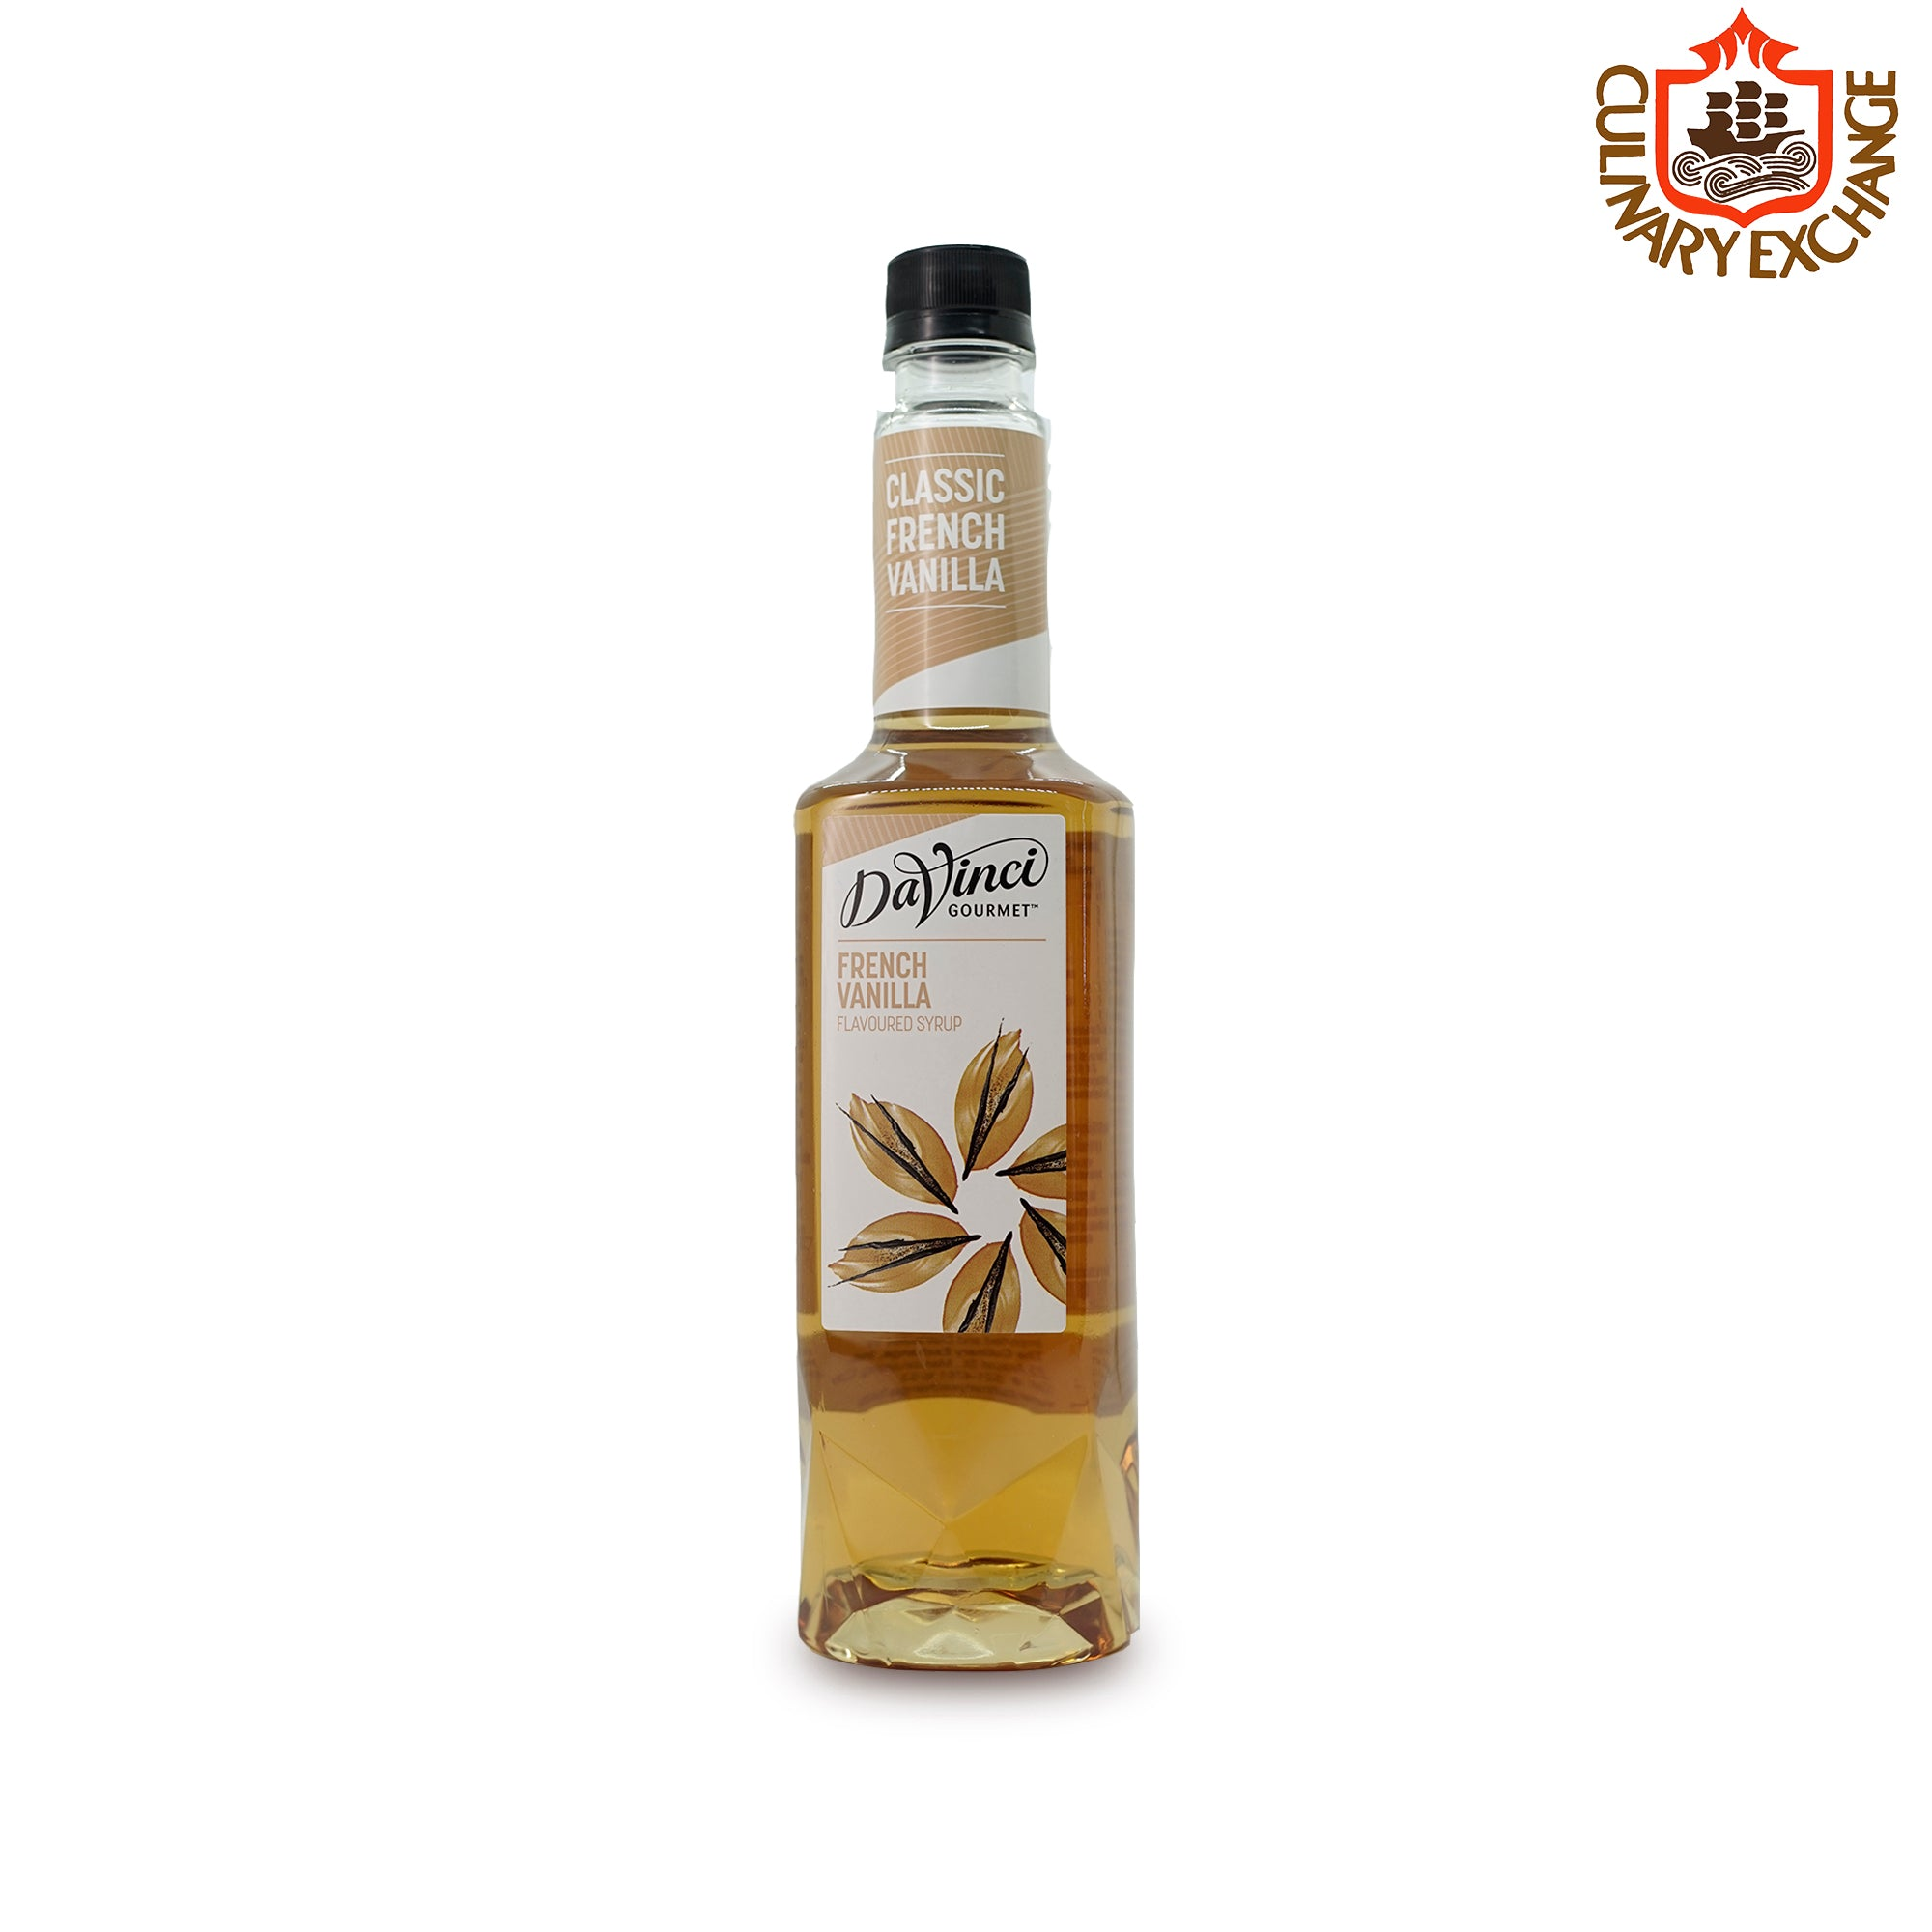 DaVinci Gourmet French Vanilla Flavoured Syrup (750mL)